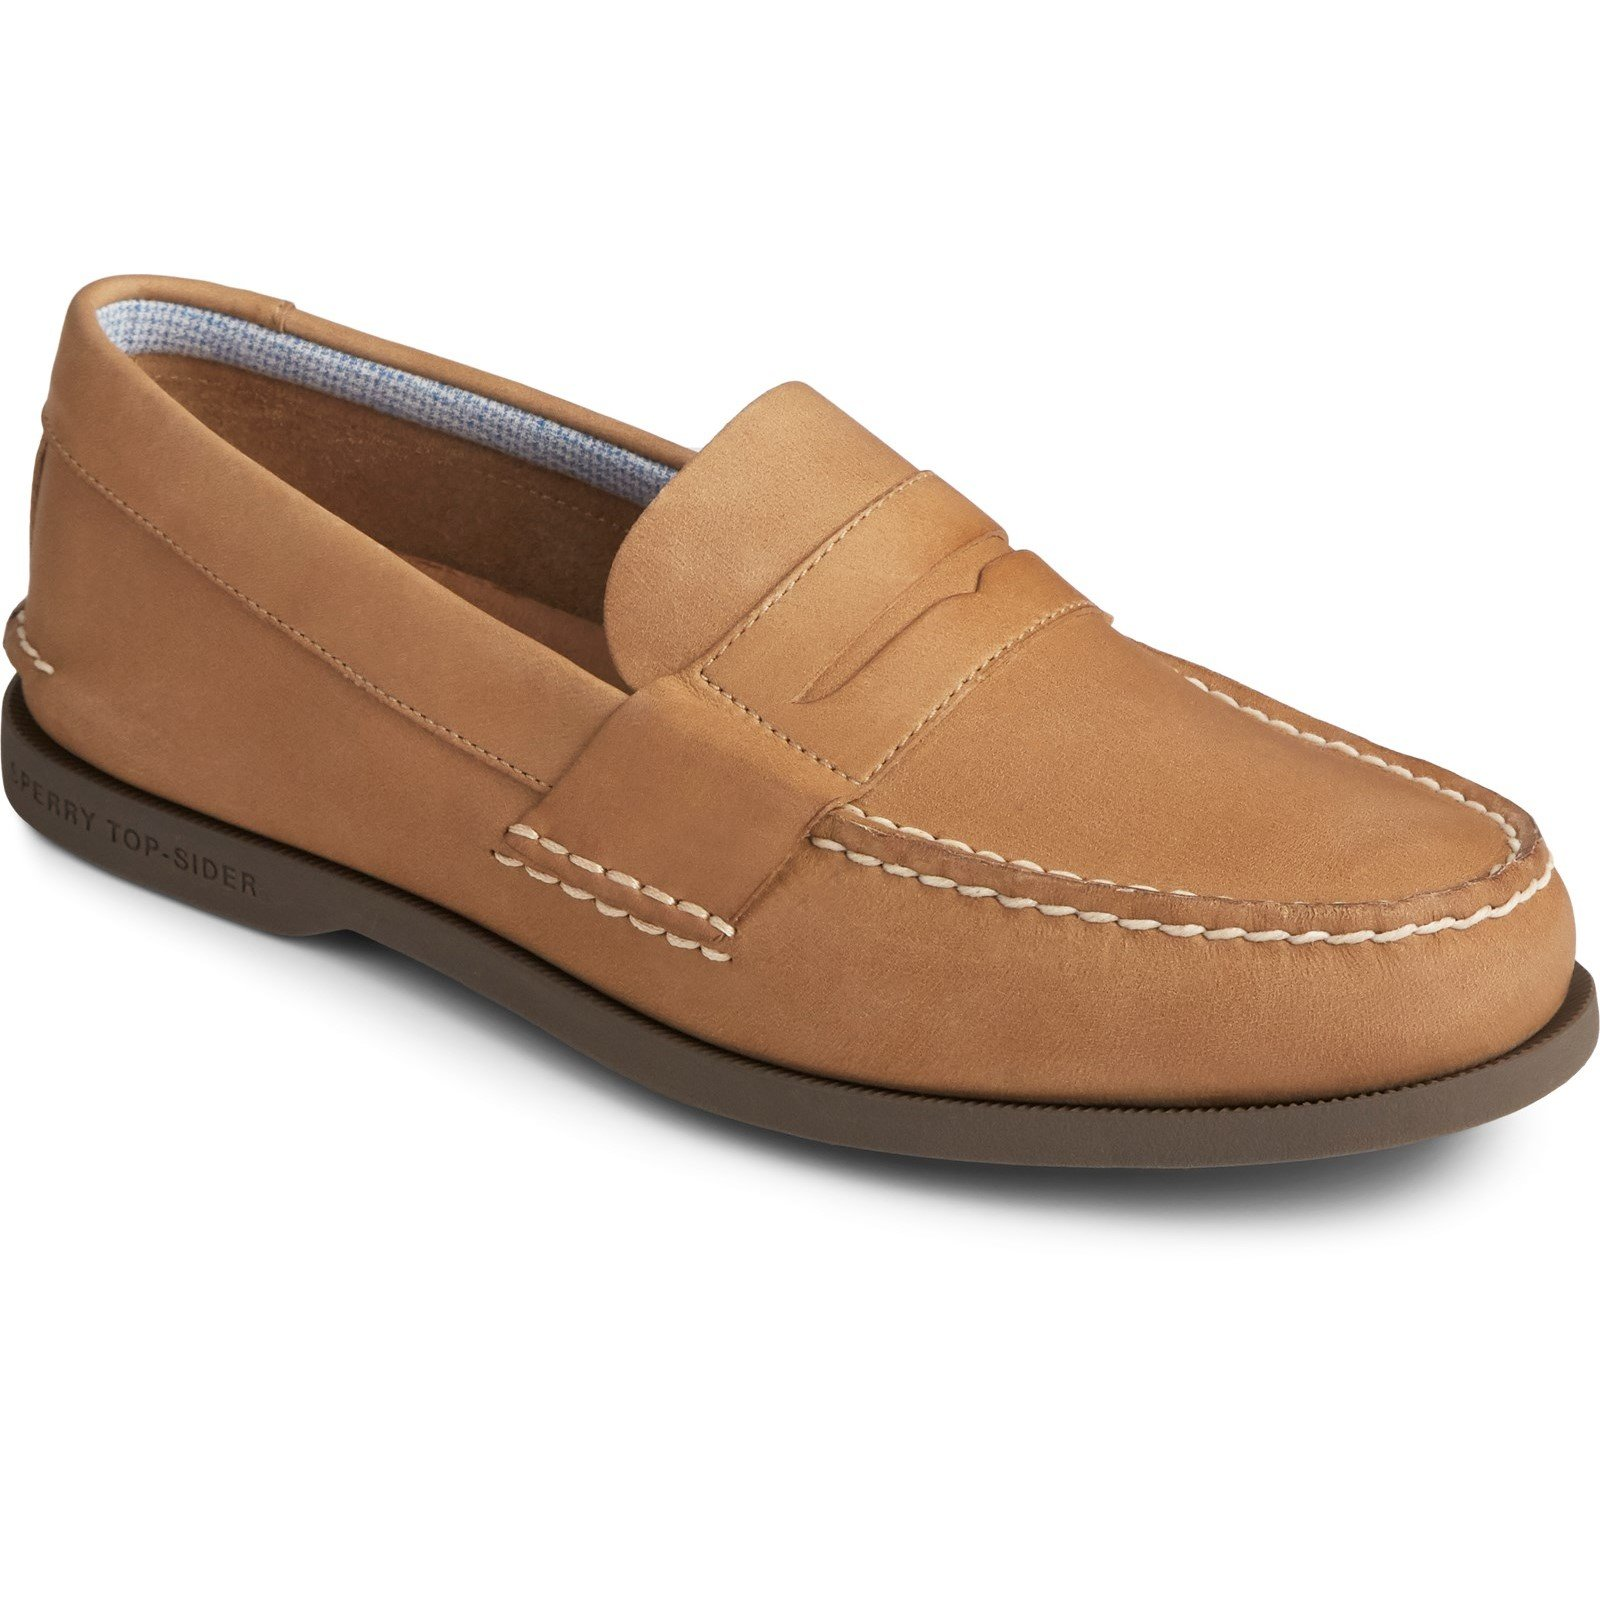 Sperry Men's Authentic Original Penny Loafer Various Colours 31733 - Sahara 9